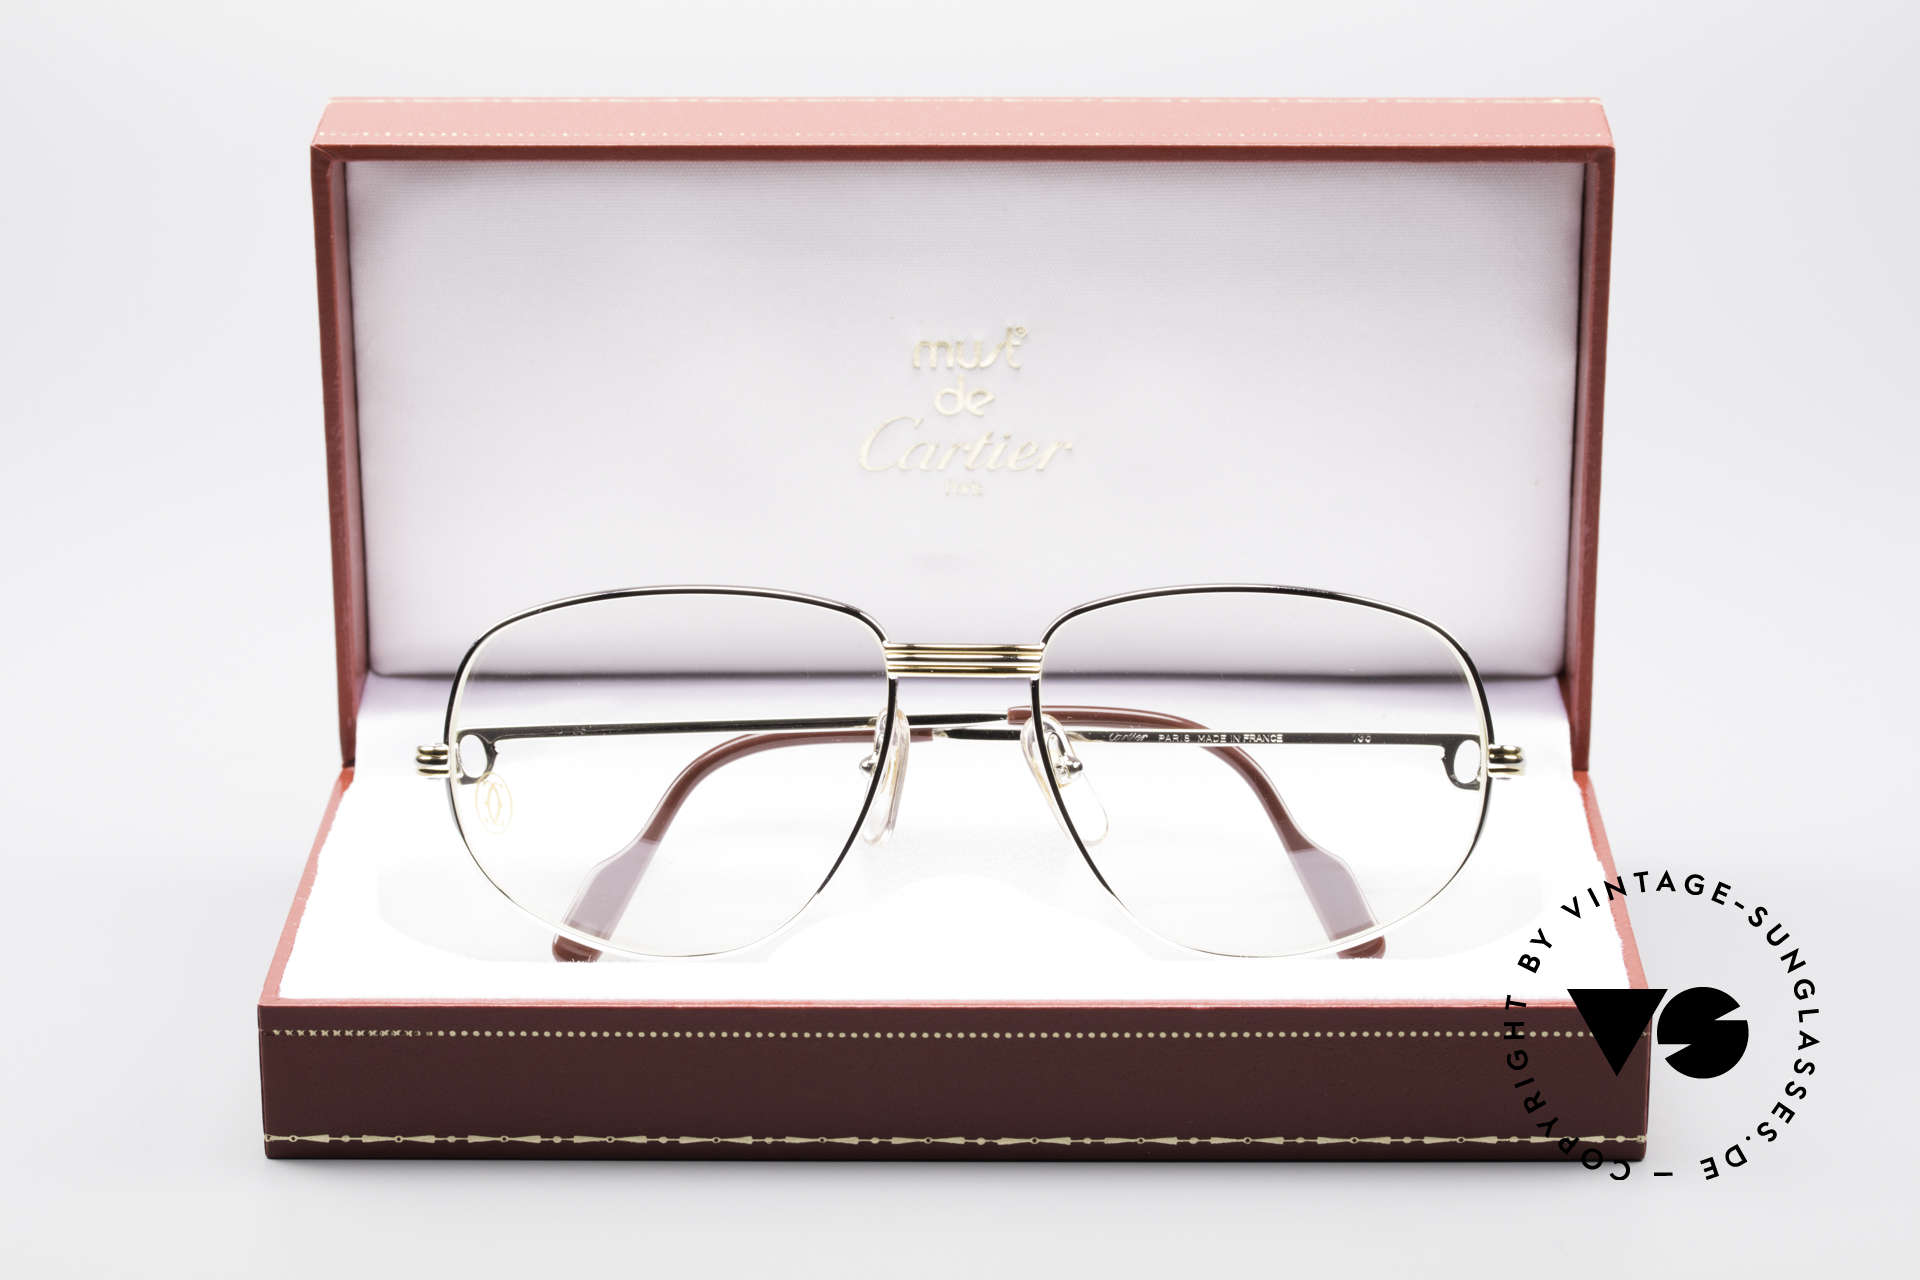 Cartier Romance LC - L Platinum Finish Frame, unworn with orig. packing (hard to find in this condition), Made for Men